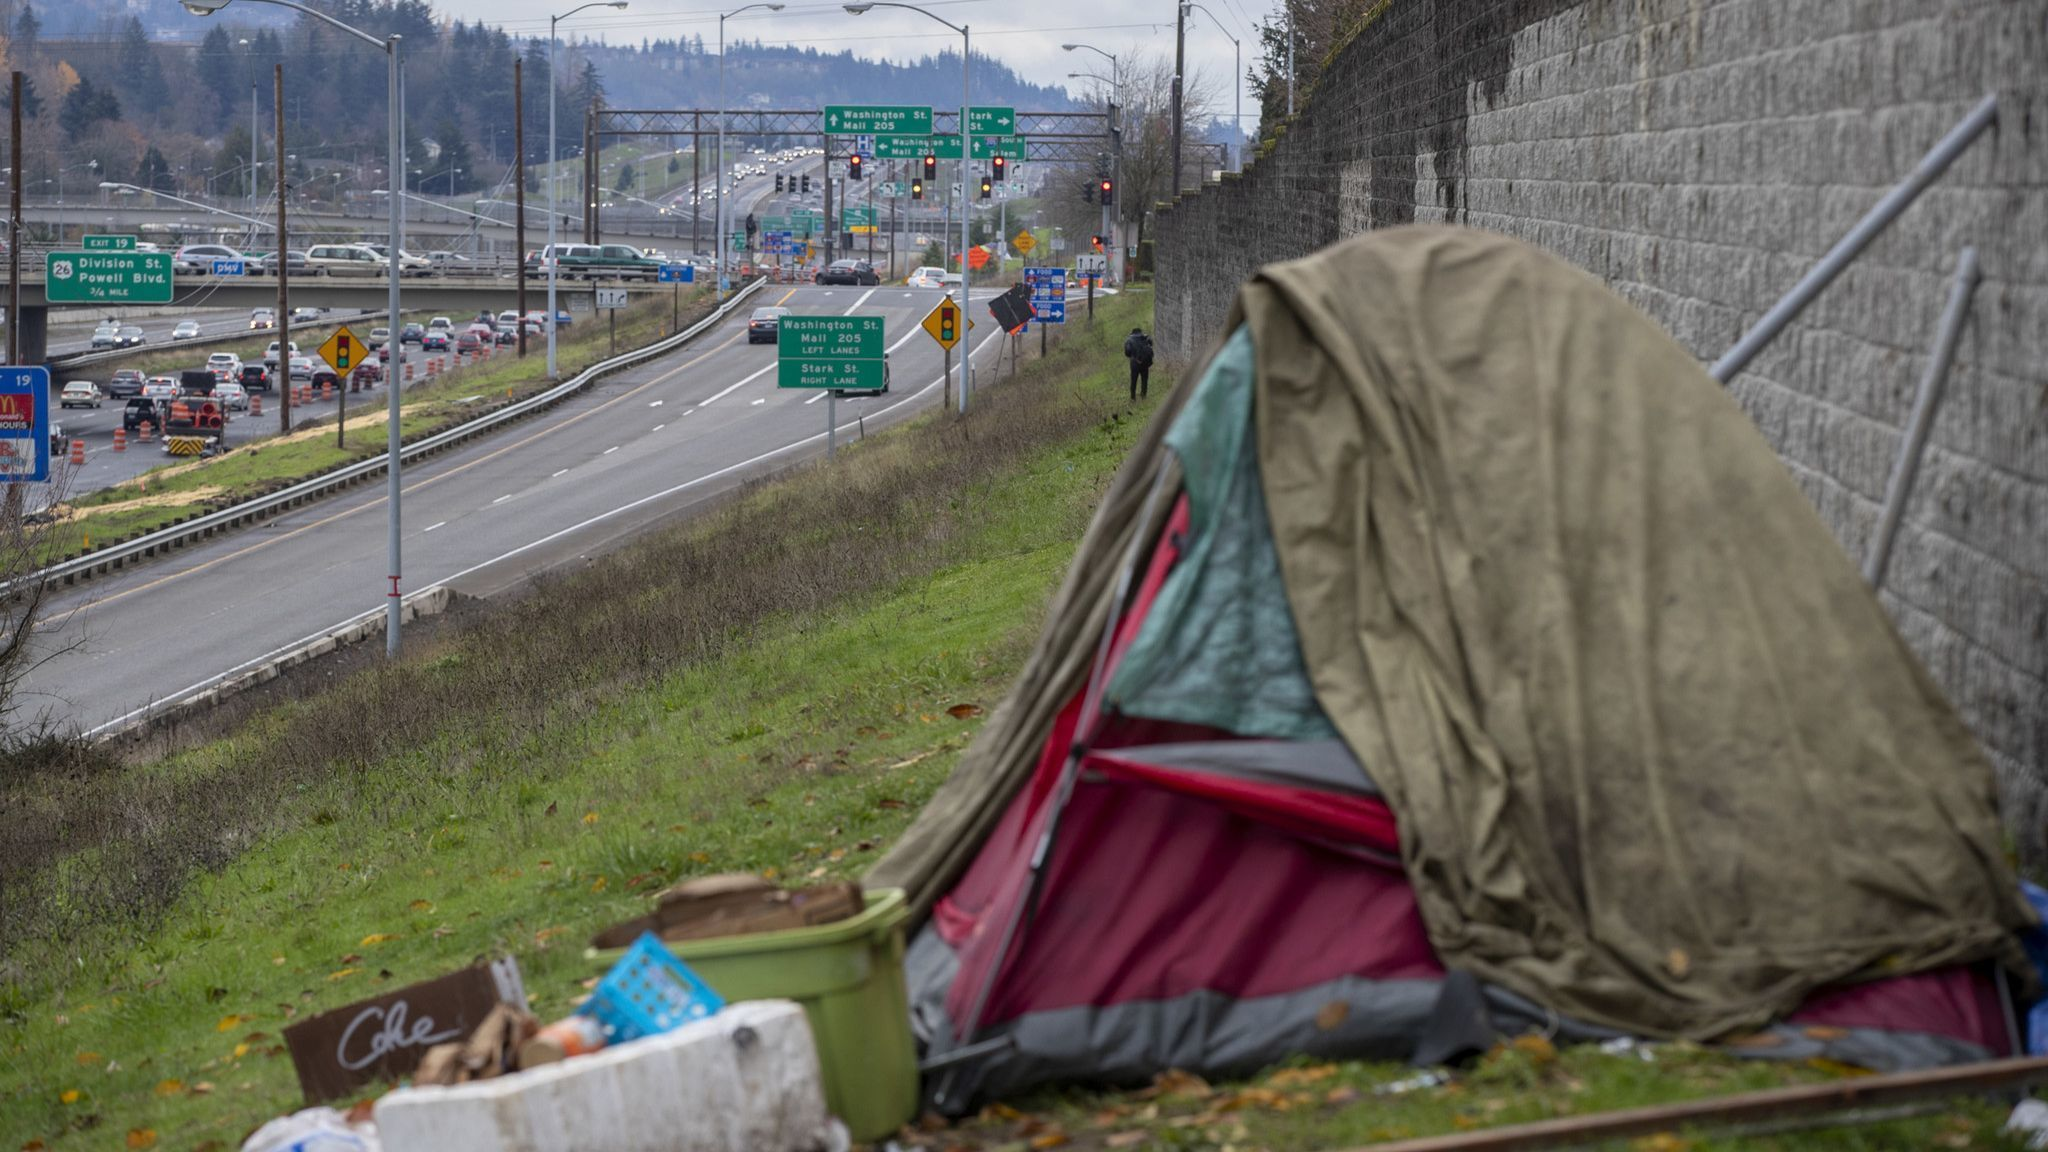 PORTLAND, ORE. — SATURDAY, DECEMBER 1, 2018: A homeless encampment along Interstate 205 in the Mo